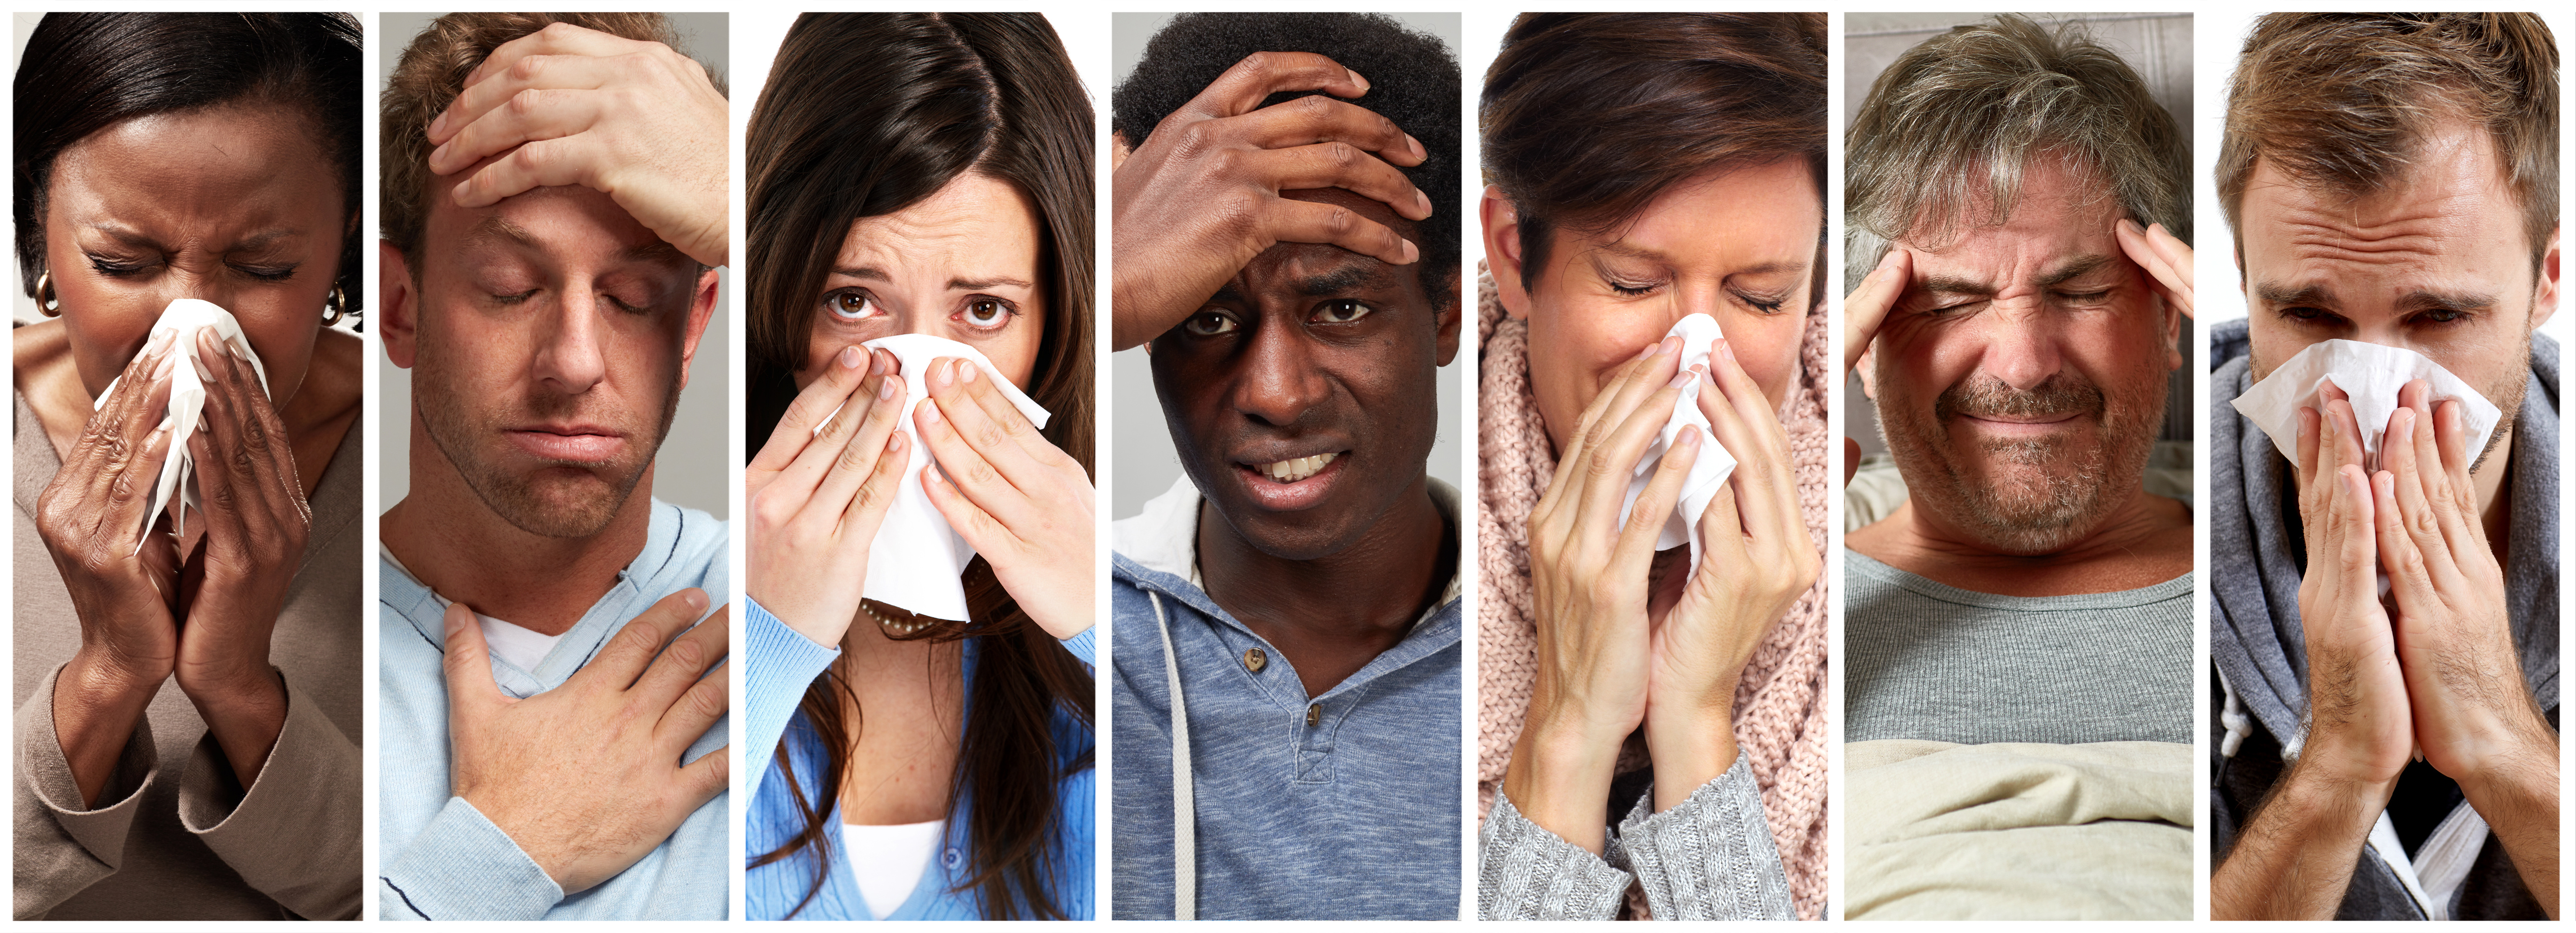 Cold vs Flu – Know the Difference